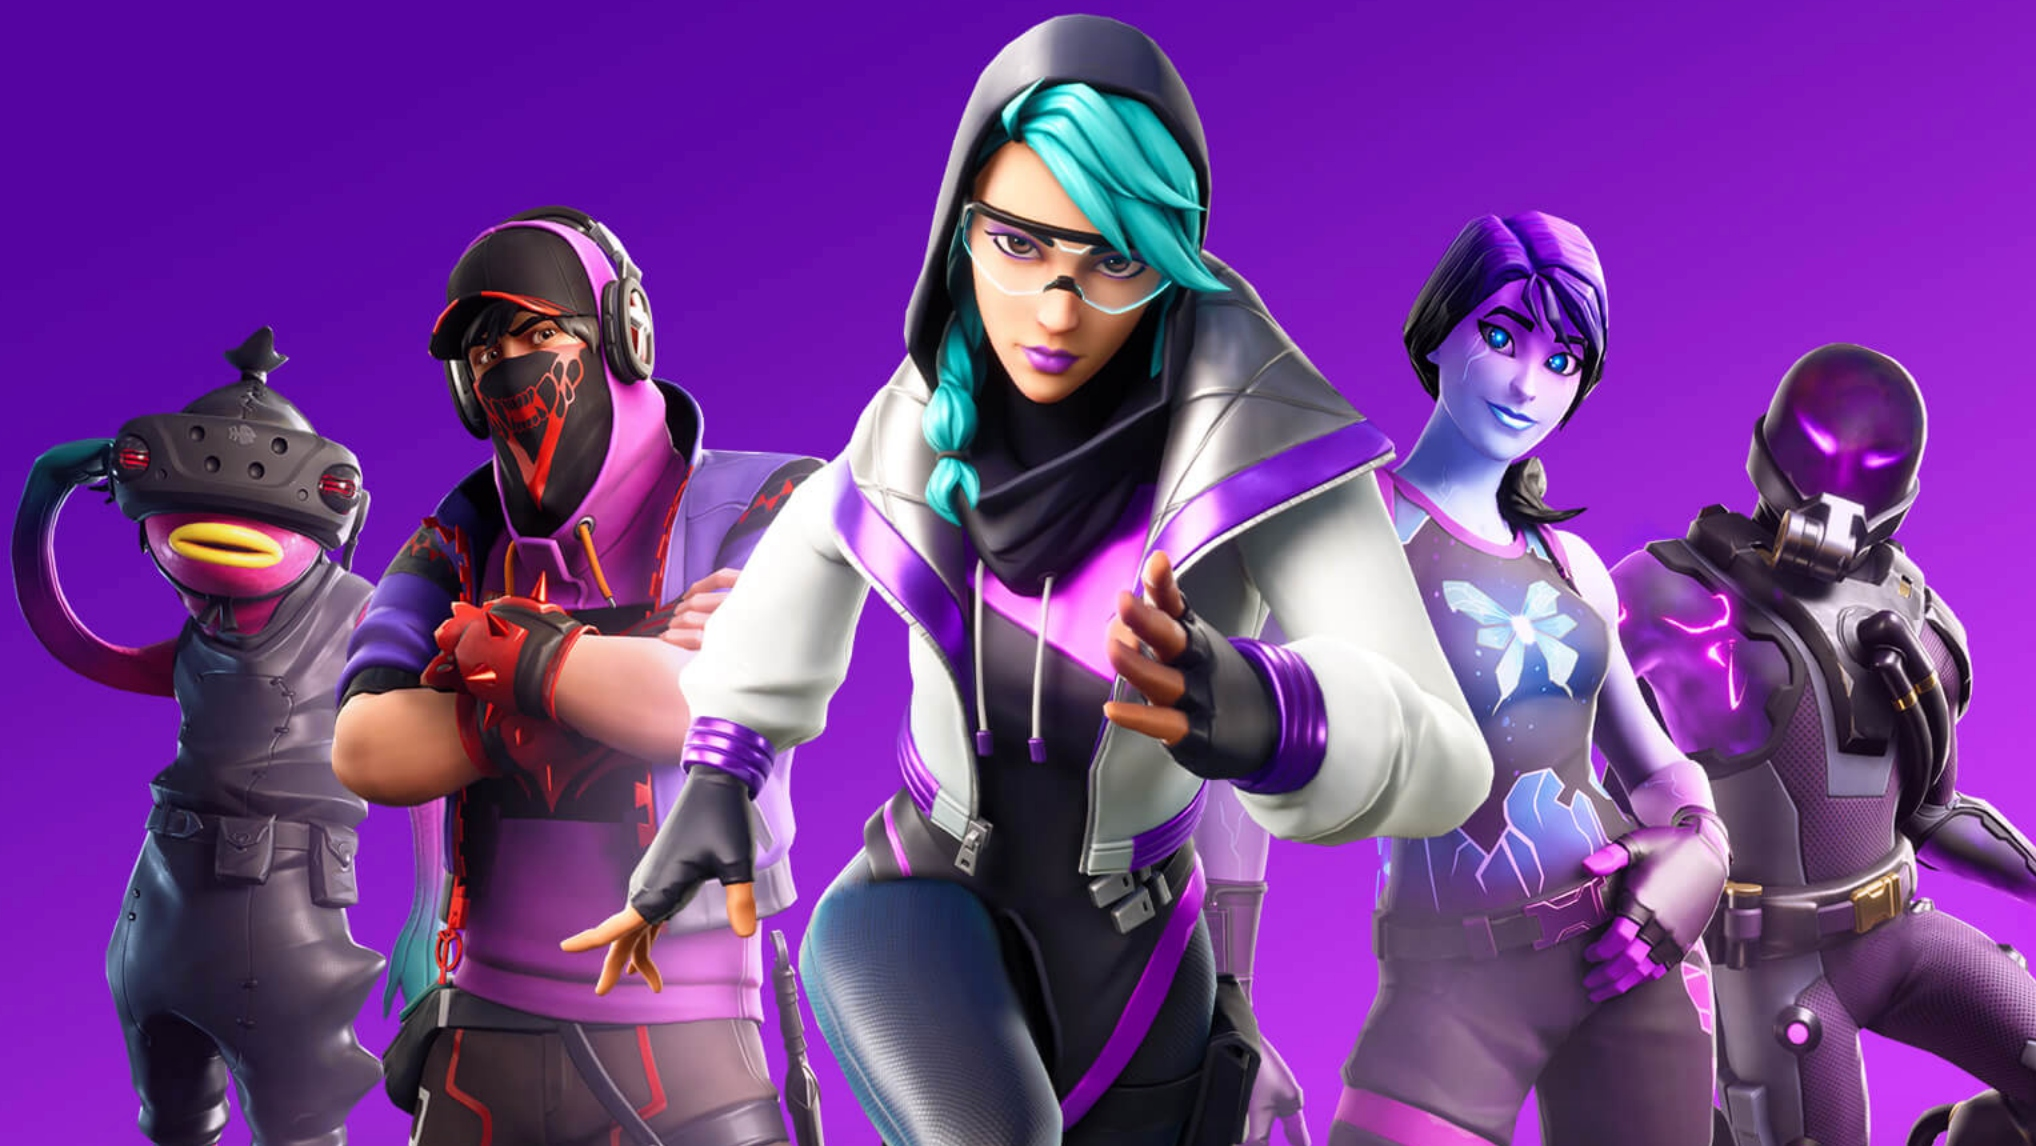 Limit Of Building In Fortnite Epic Outlines Reason For Removing Turbo Building And They Actually Make Some Sense Fortnite Intel